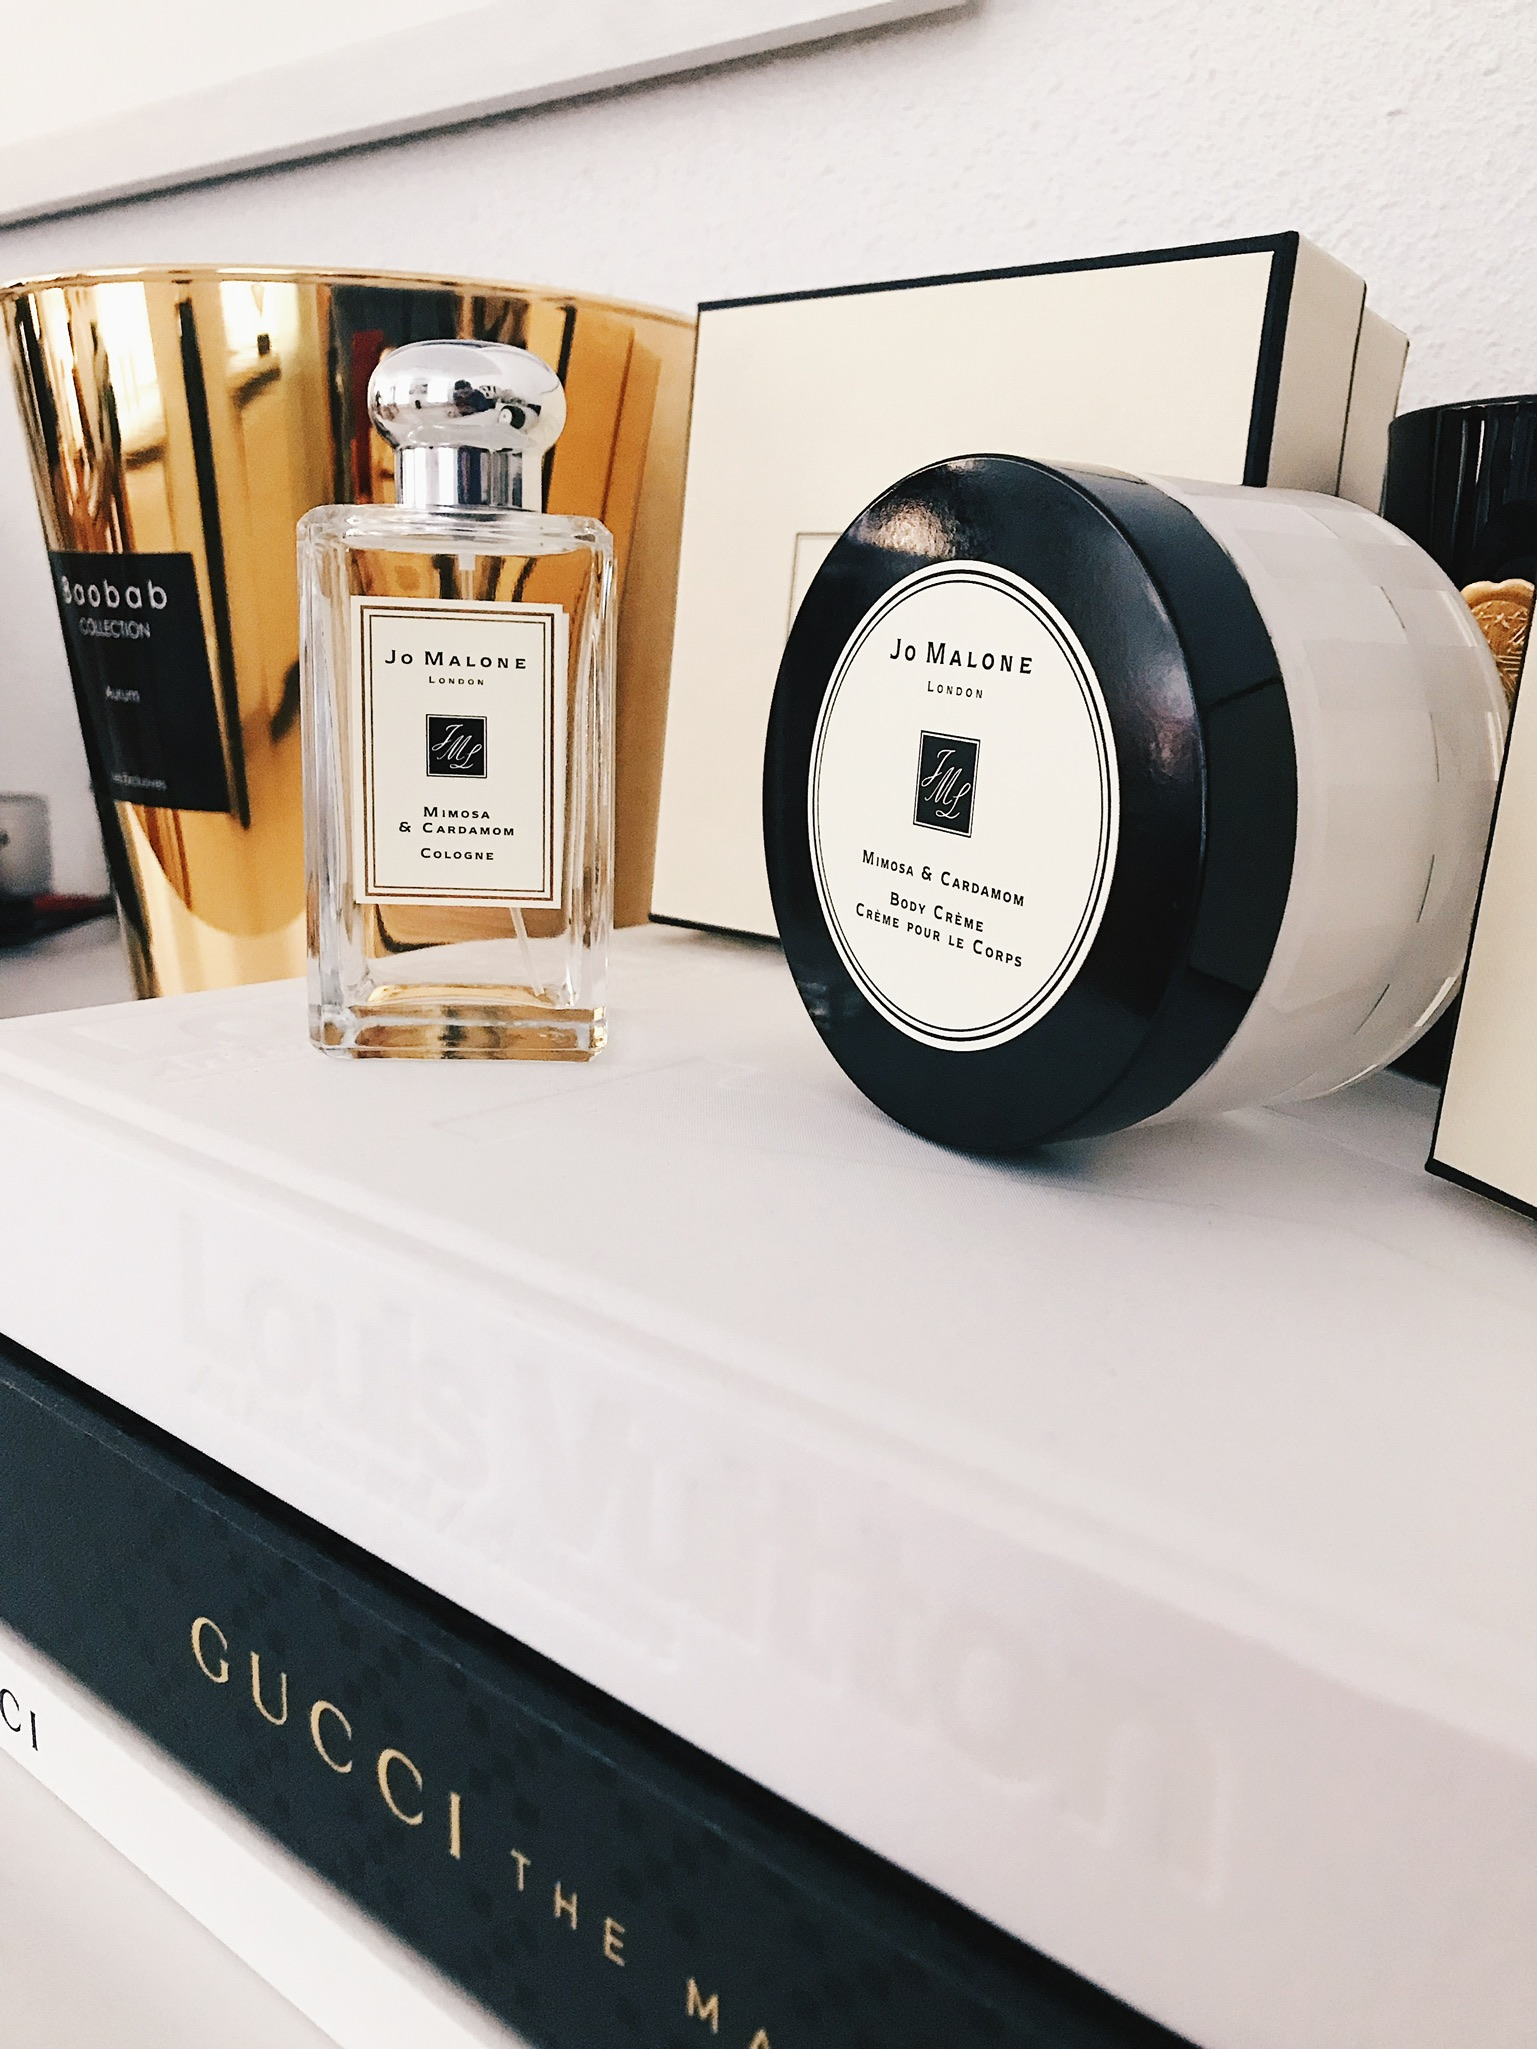 Getting The Jo Malone Experience